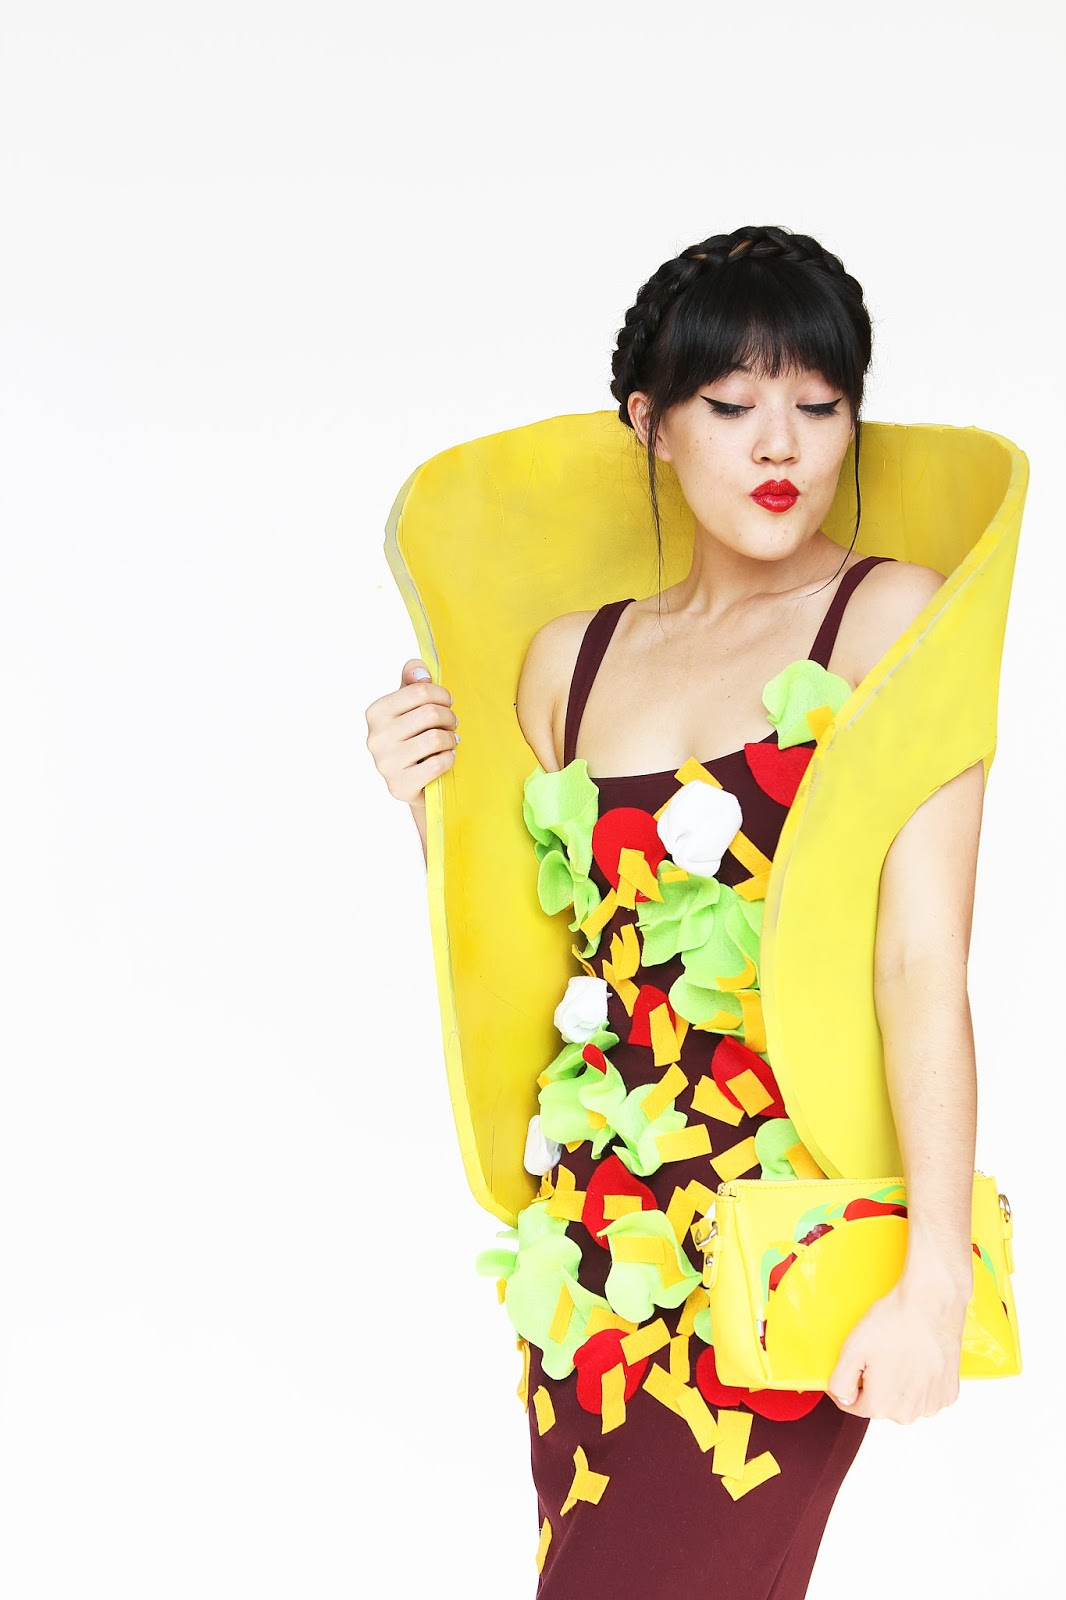 Tacos are easily a food favourite, so why not dress like one?This costume is so easy to make and it's totally perfect to wear for free burrito day at Chipotle on Halloween. (If you live near a Chipotle, moment of silence for the rest of us who don't). Anyways, the taco purse is definitely my favourite part and I kind of want to just wear this everyday. That's acceptable, right?? Grab the guac and the hot sauce, and read the how-to because you're about to be one big taco!  (via Aww, Sam!)